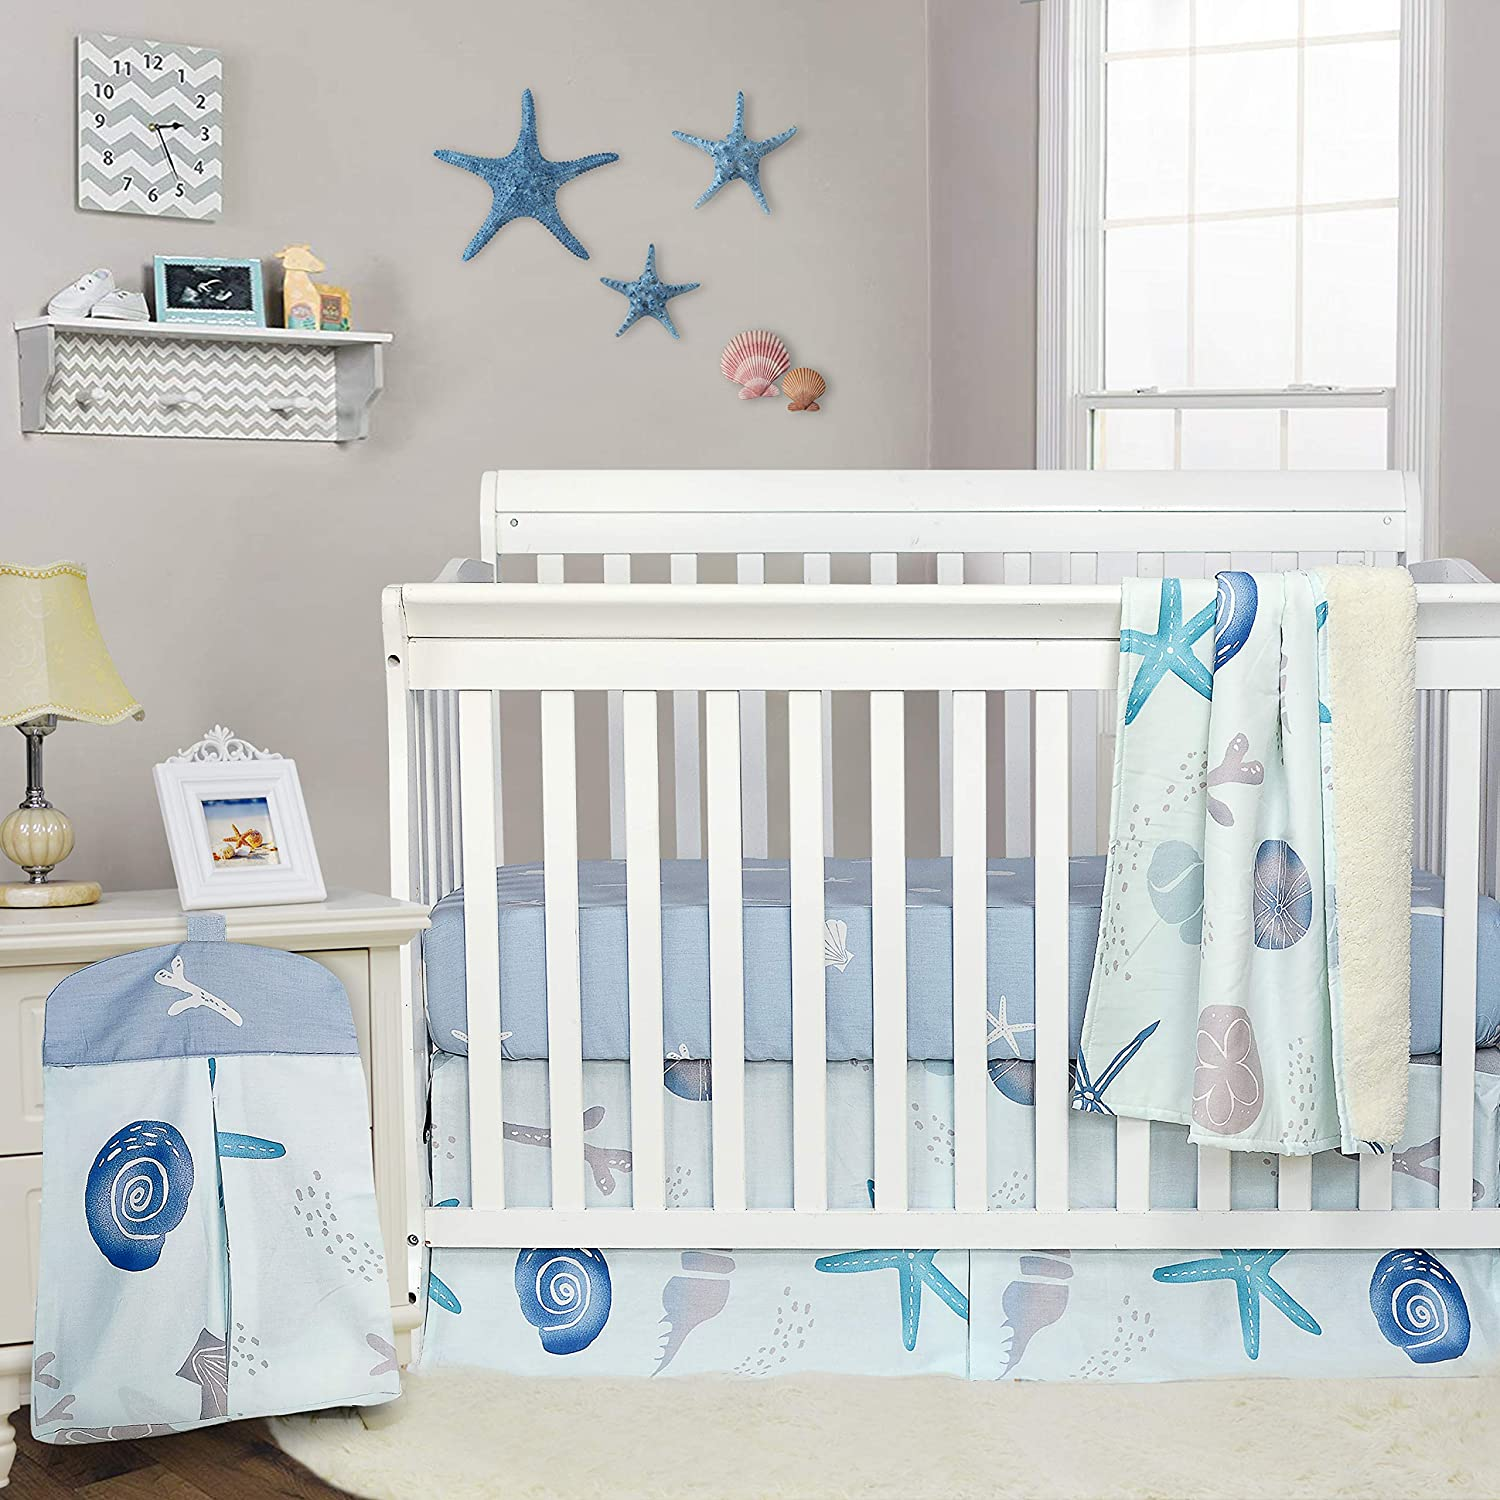 Brandream Baby Boys Crib Bedding Sets Nautical Nursery Bedding for Boys and Girls Ocean Animal Print Starfish Crib Bedding with Diaper Stacker 4 Piece Beach Theme,100% Cotton Hot Baby Shower Gift